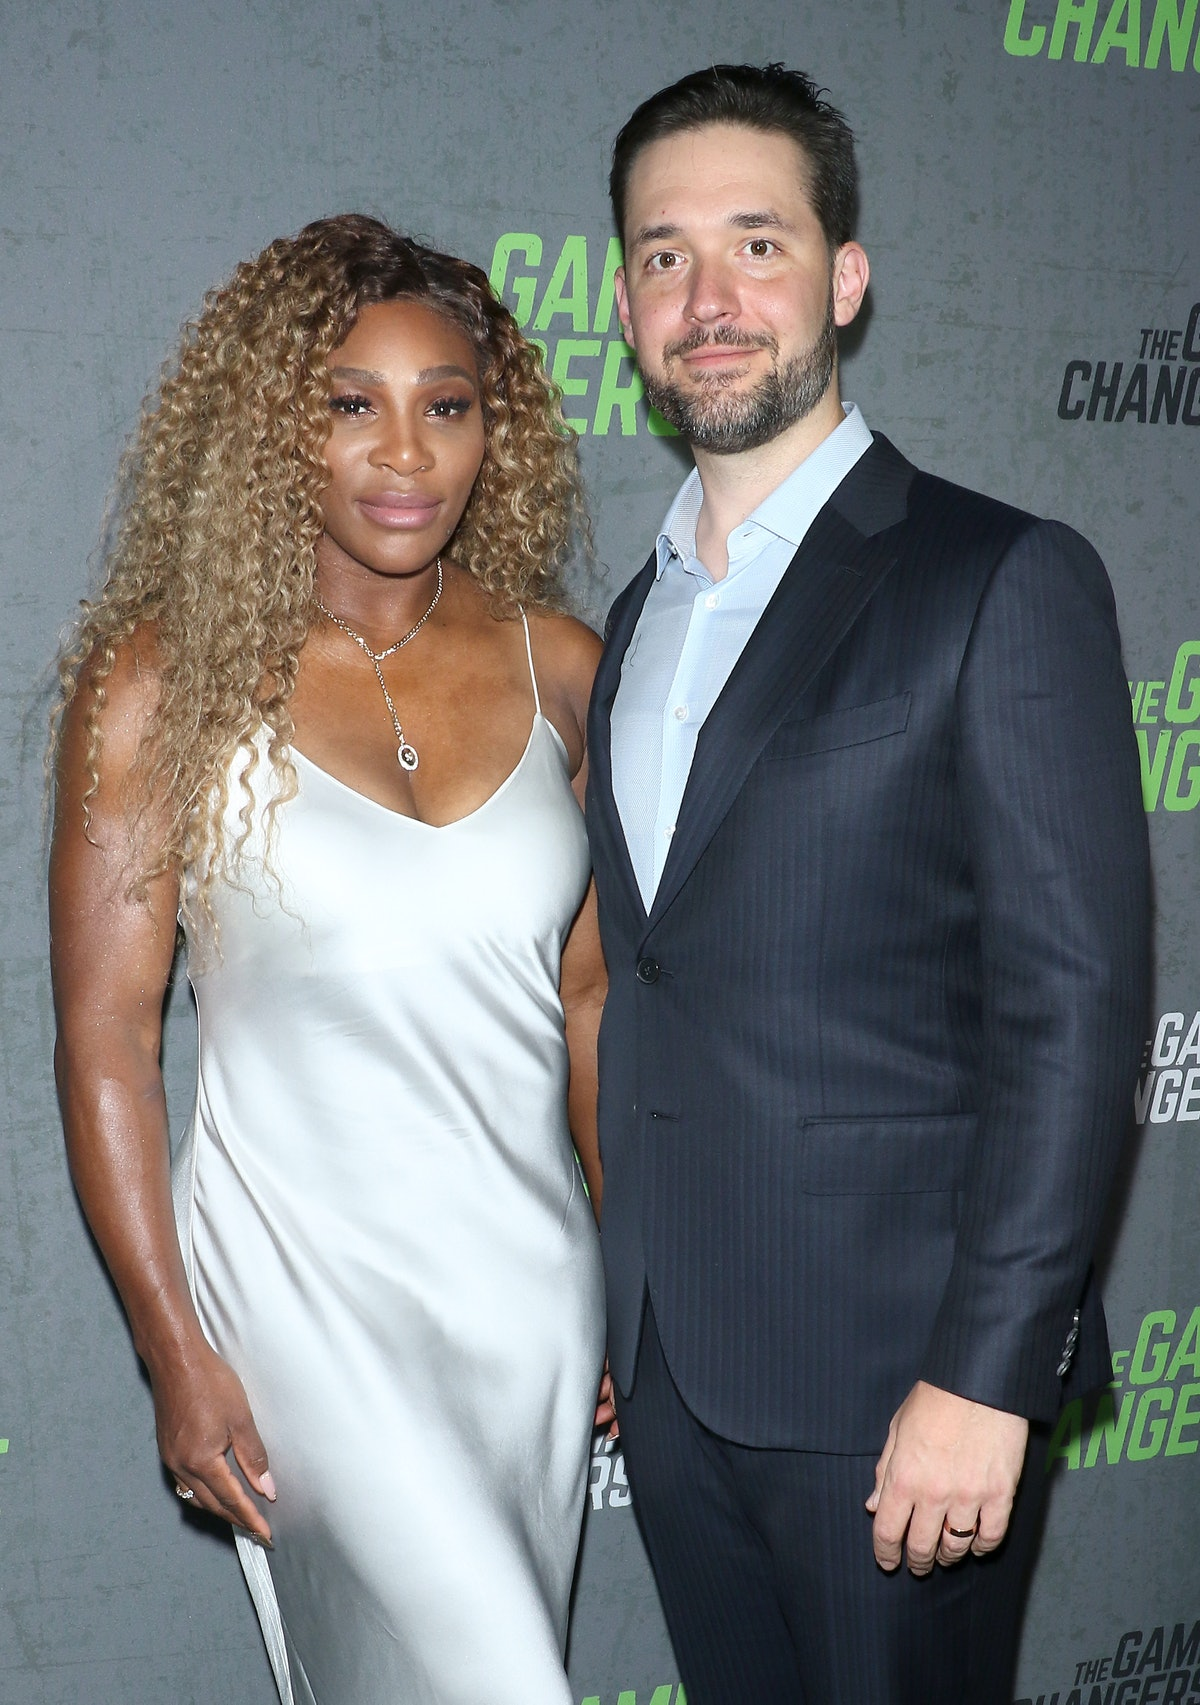 """NEW YORK, NEW YORK - SEPTEMBER 09: Tennis player Serena Williams and Alexis Ohanian attend the """"The Game Changers"""" New York premiere at Regal Battery Park 11 on September 09, 2019 in New York City. (Photo by Jim Spellman/Getty Images)"""